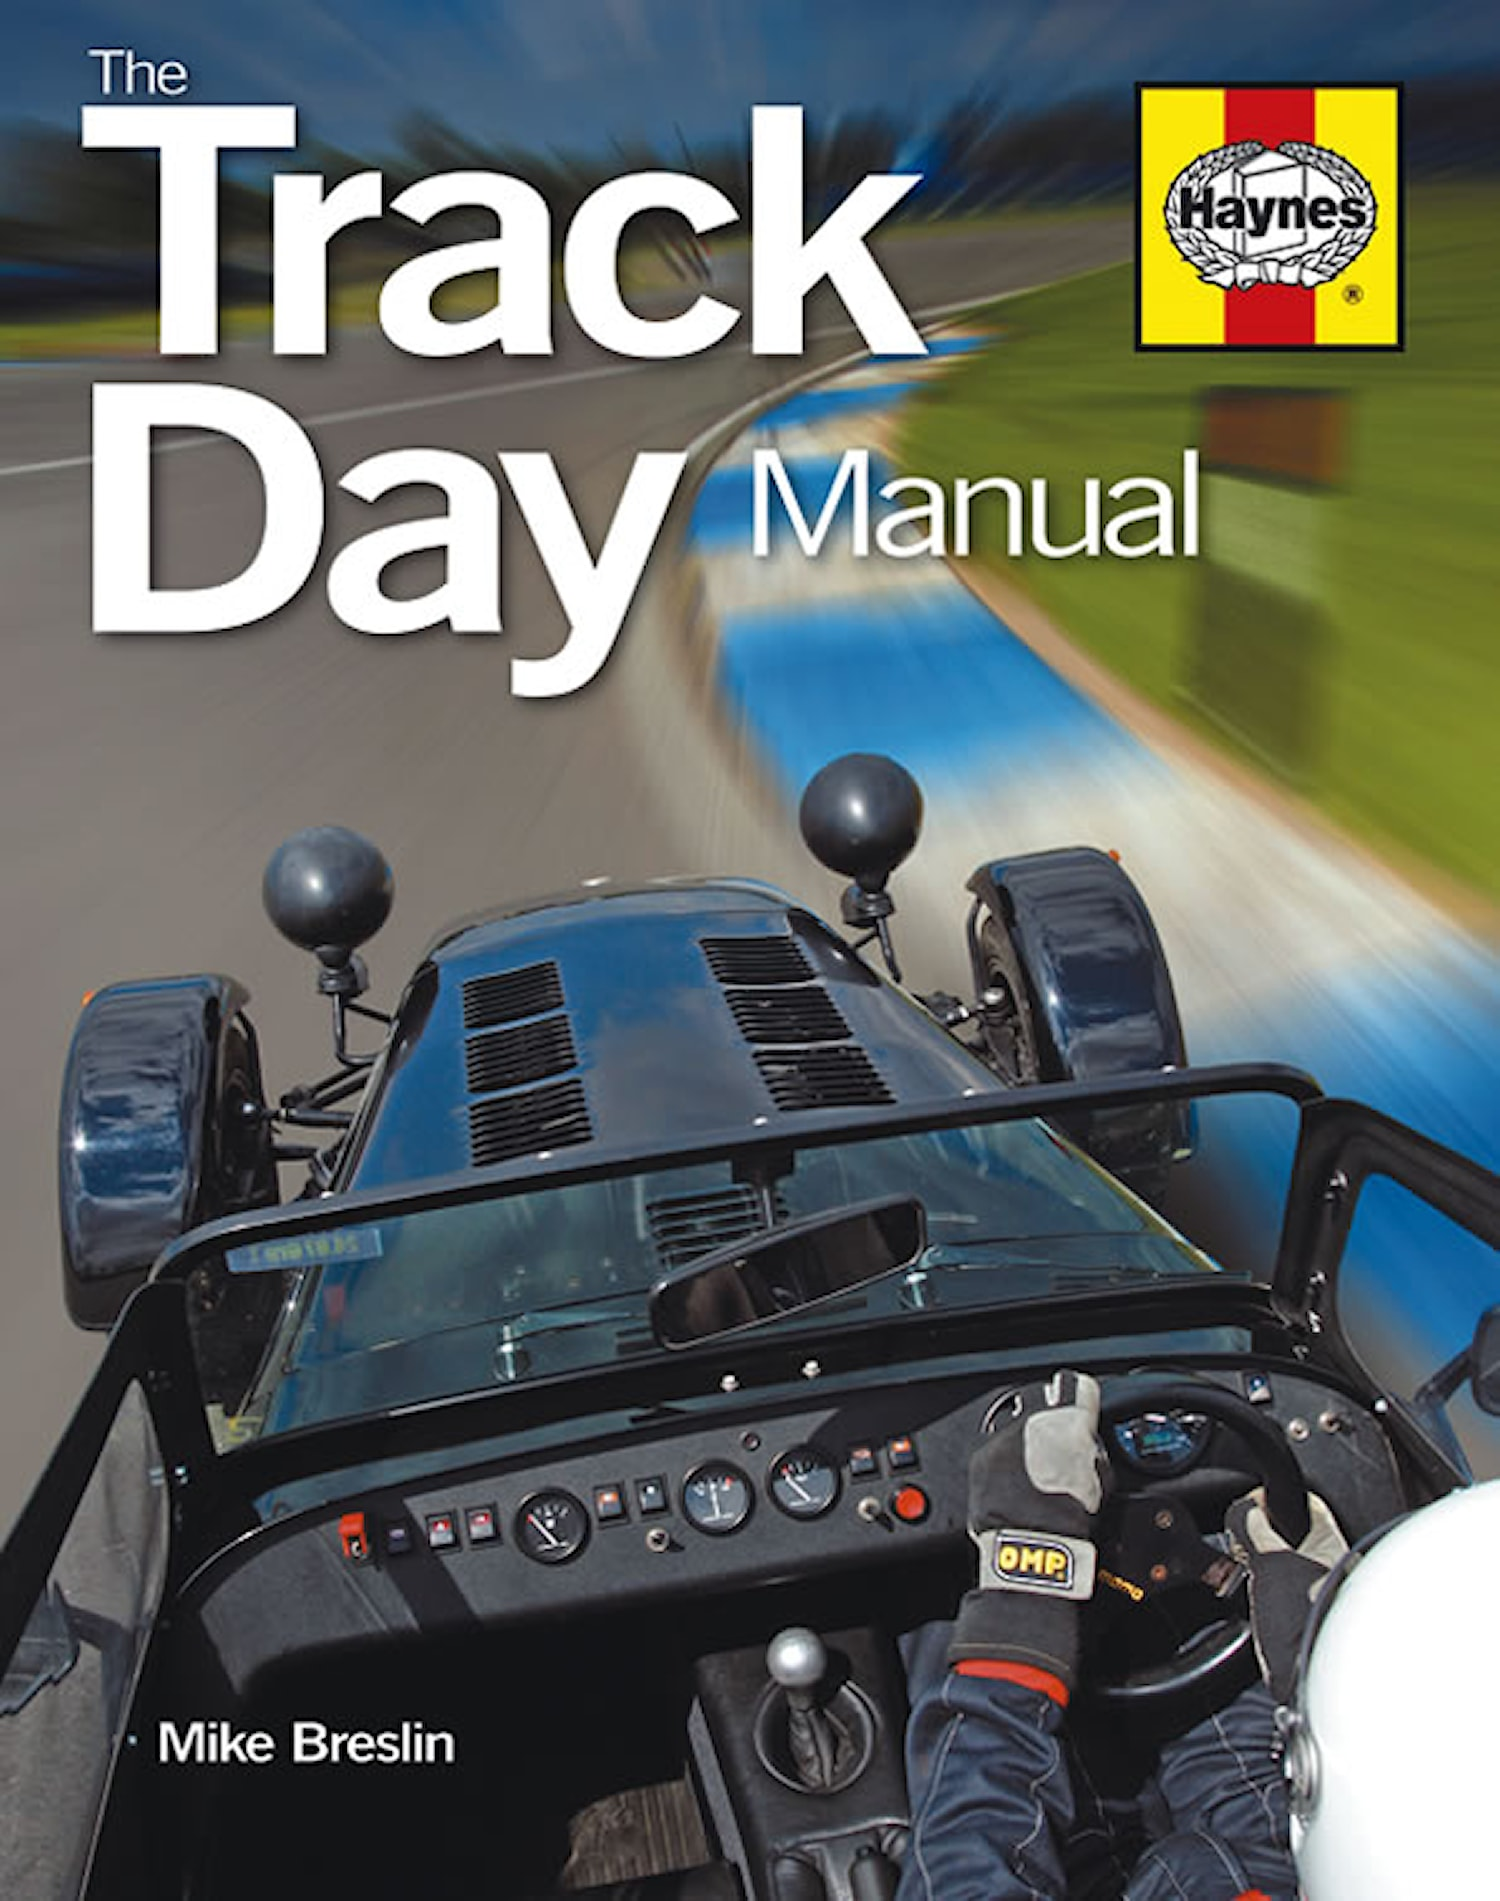 The Track Day Manual